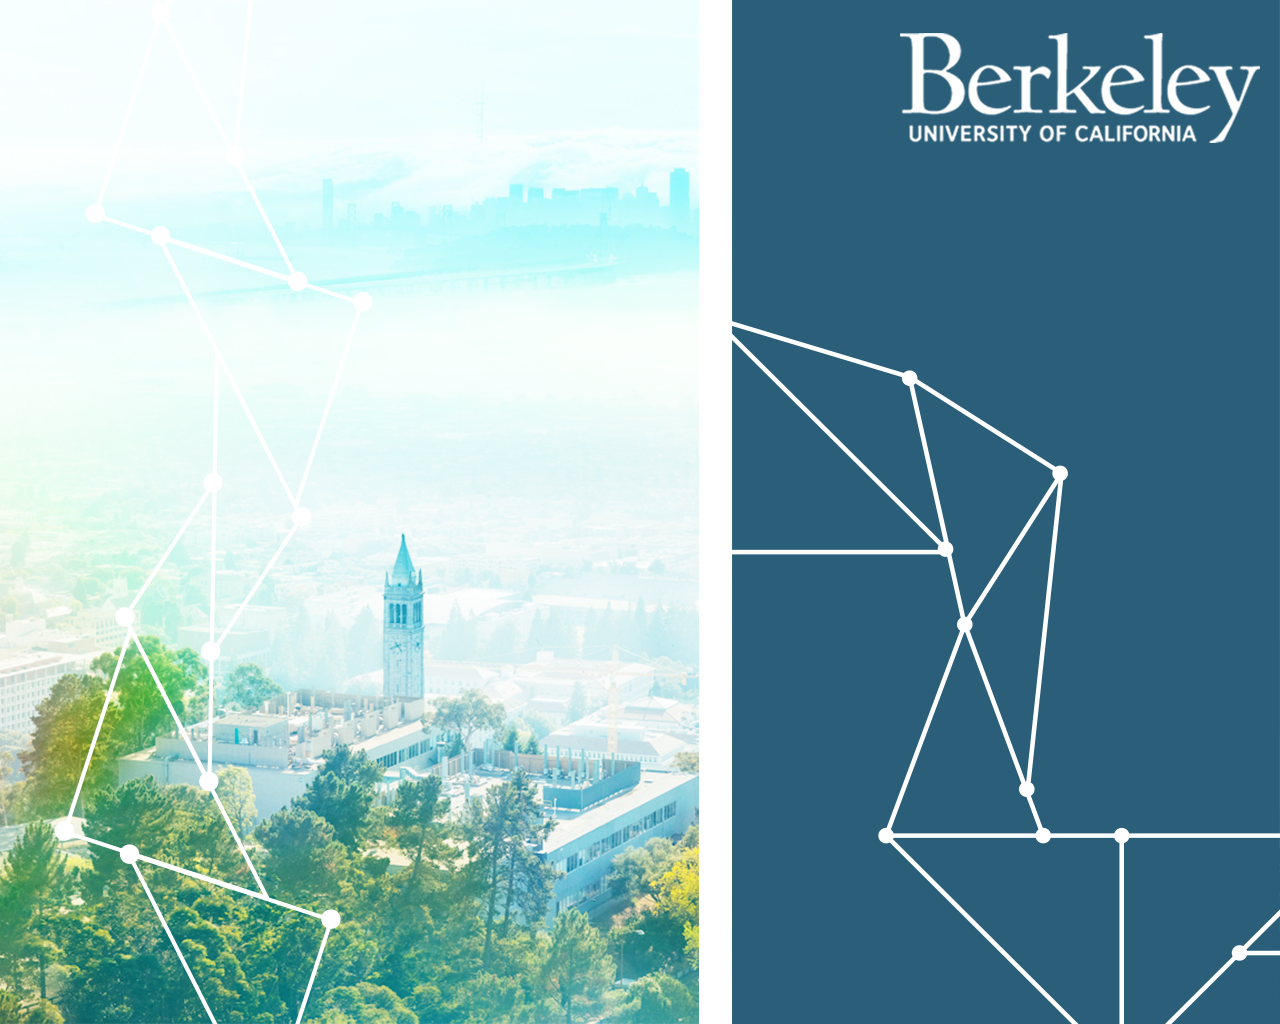 Wallpaper Downloads UC Berkeley Office of Undergraduate Admissions 1280x1024